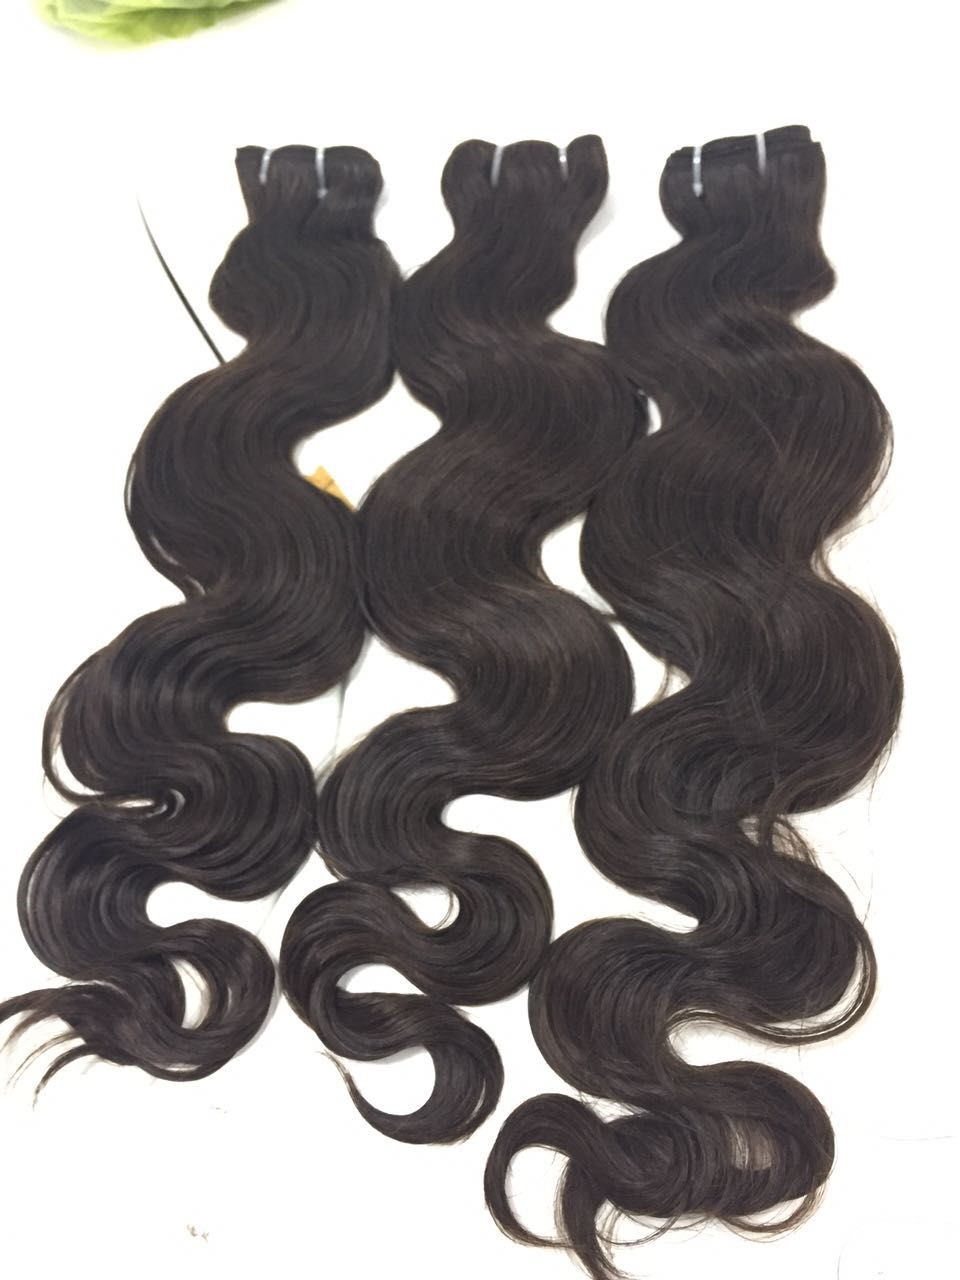 Standards Of 12 Inches Natural Wavy Hair Extensions